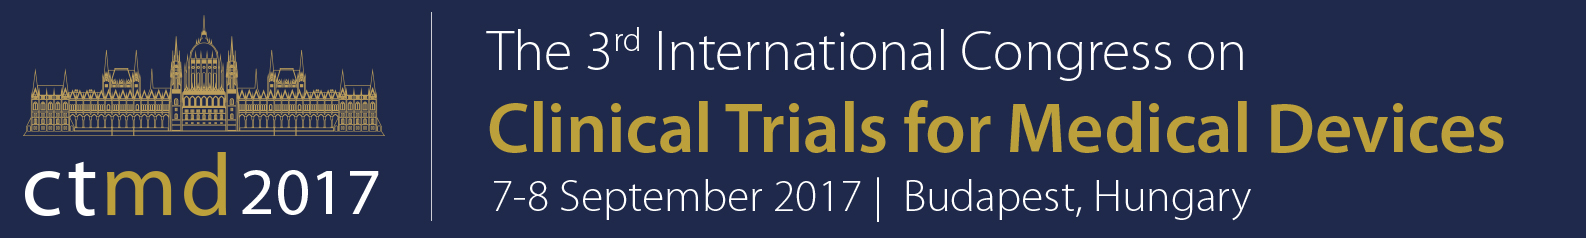 The 3rd International Congress on Clinical Trials for Medical Devices